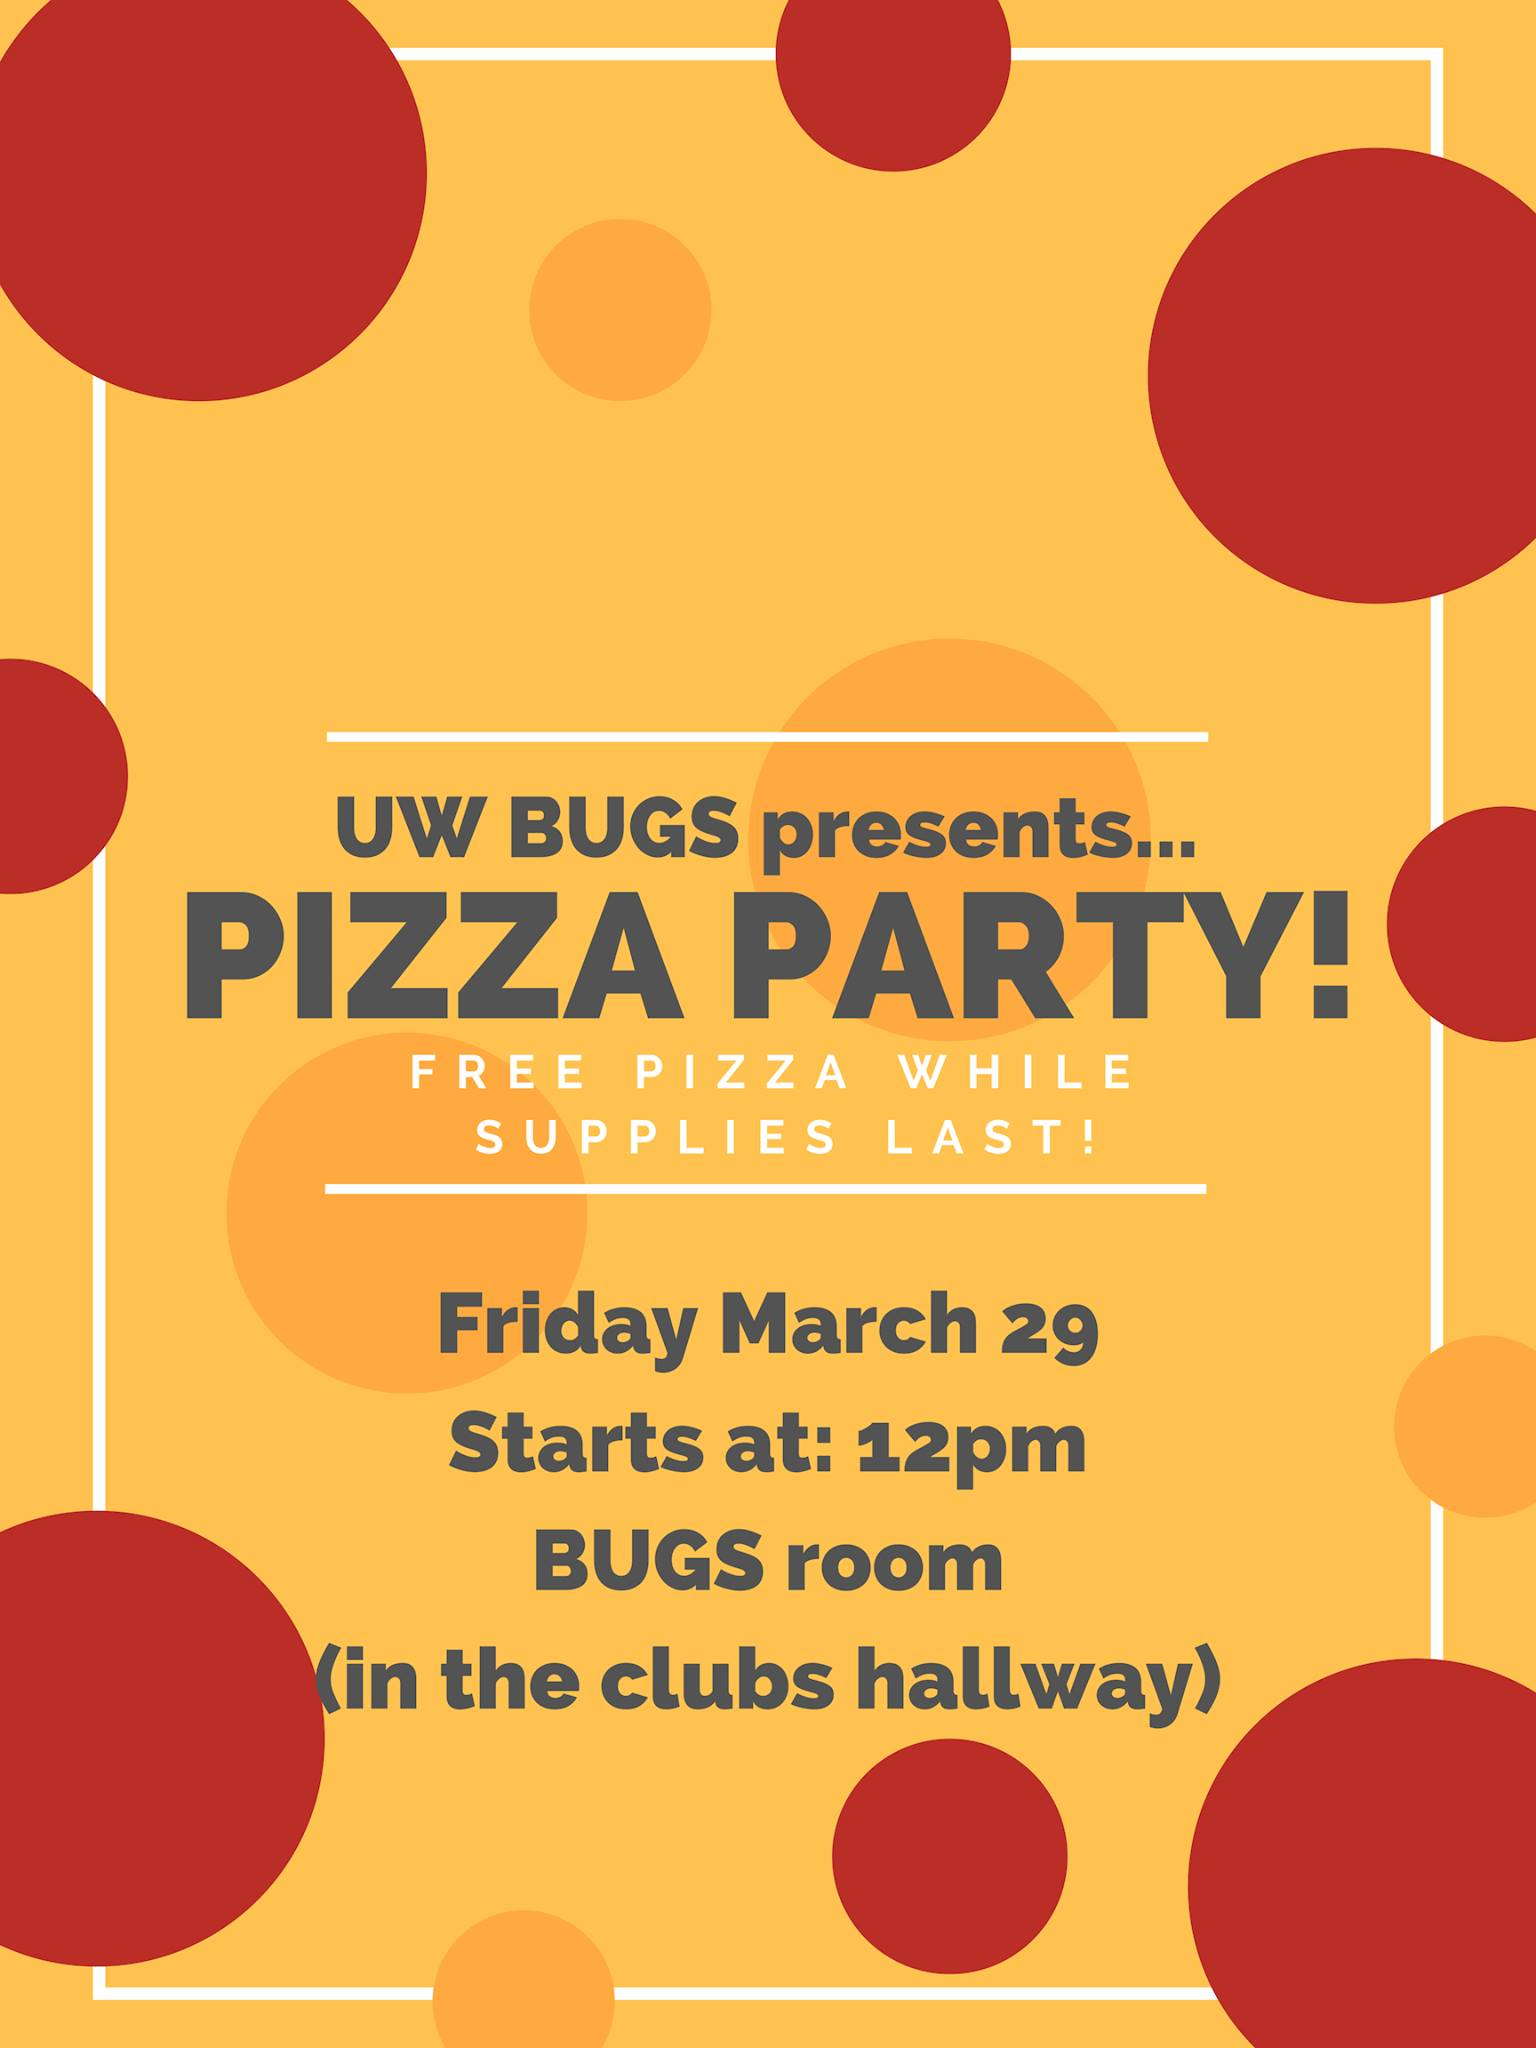 BUGS pizza party March 29 at noon while supplies last